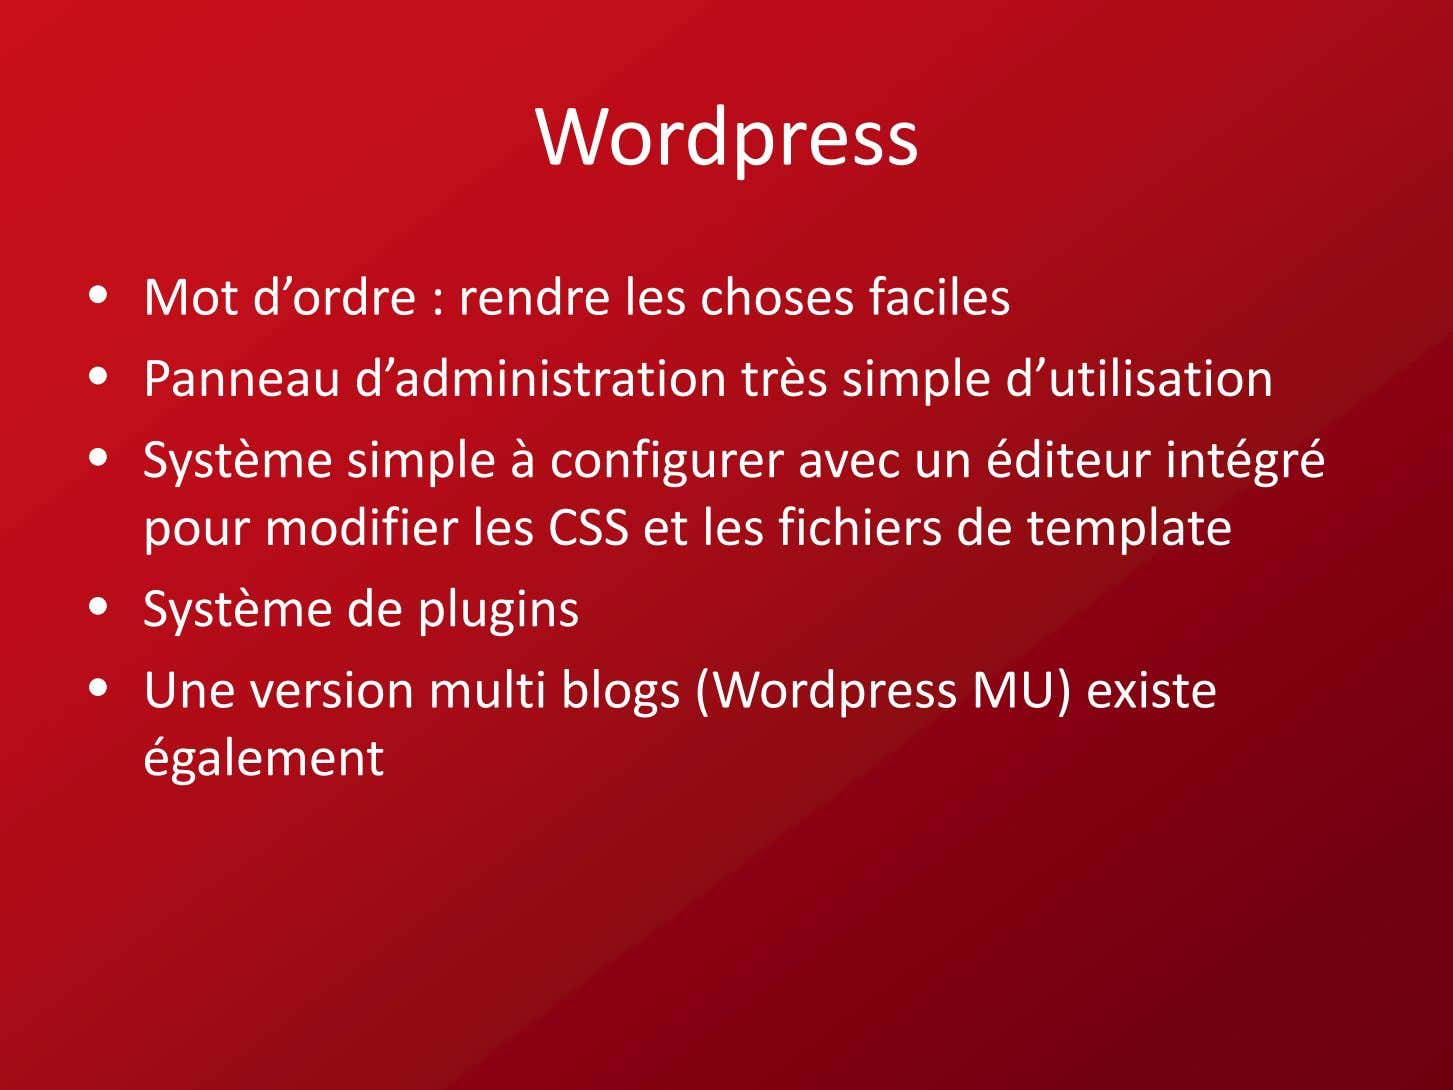 Word press • Mot d'ordre : rendre les choses faciles • Panneau d'administration très simple